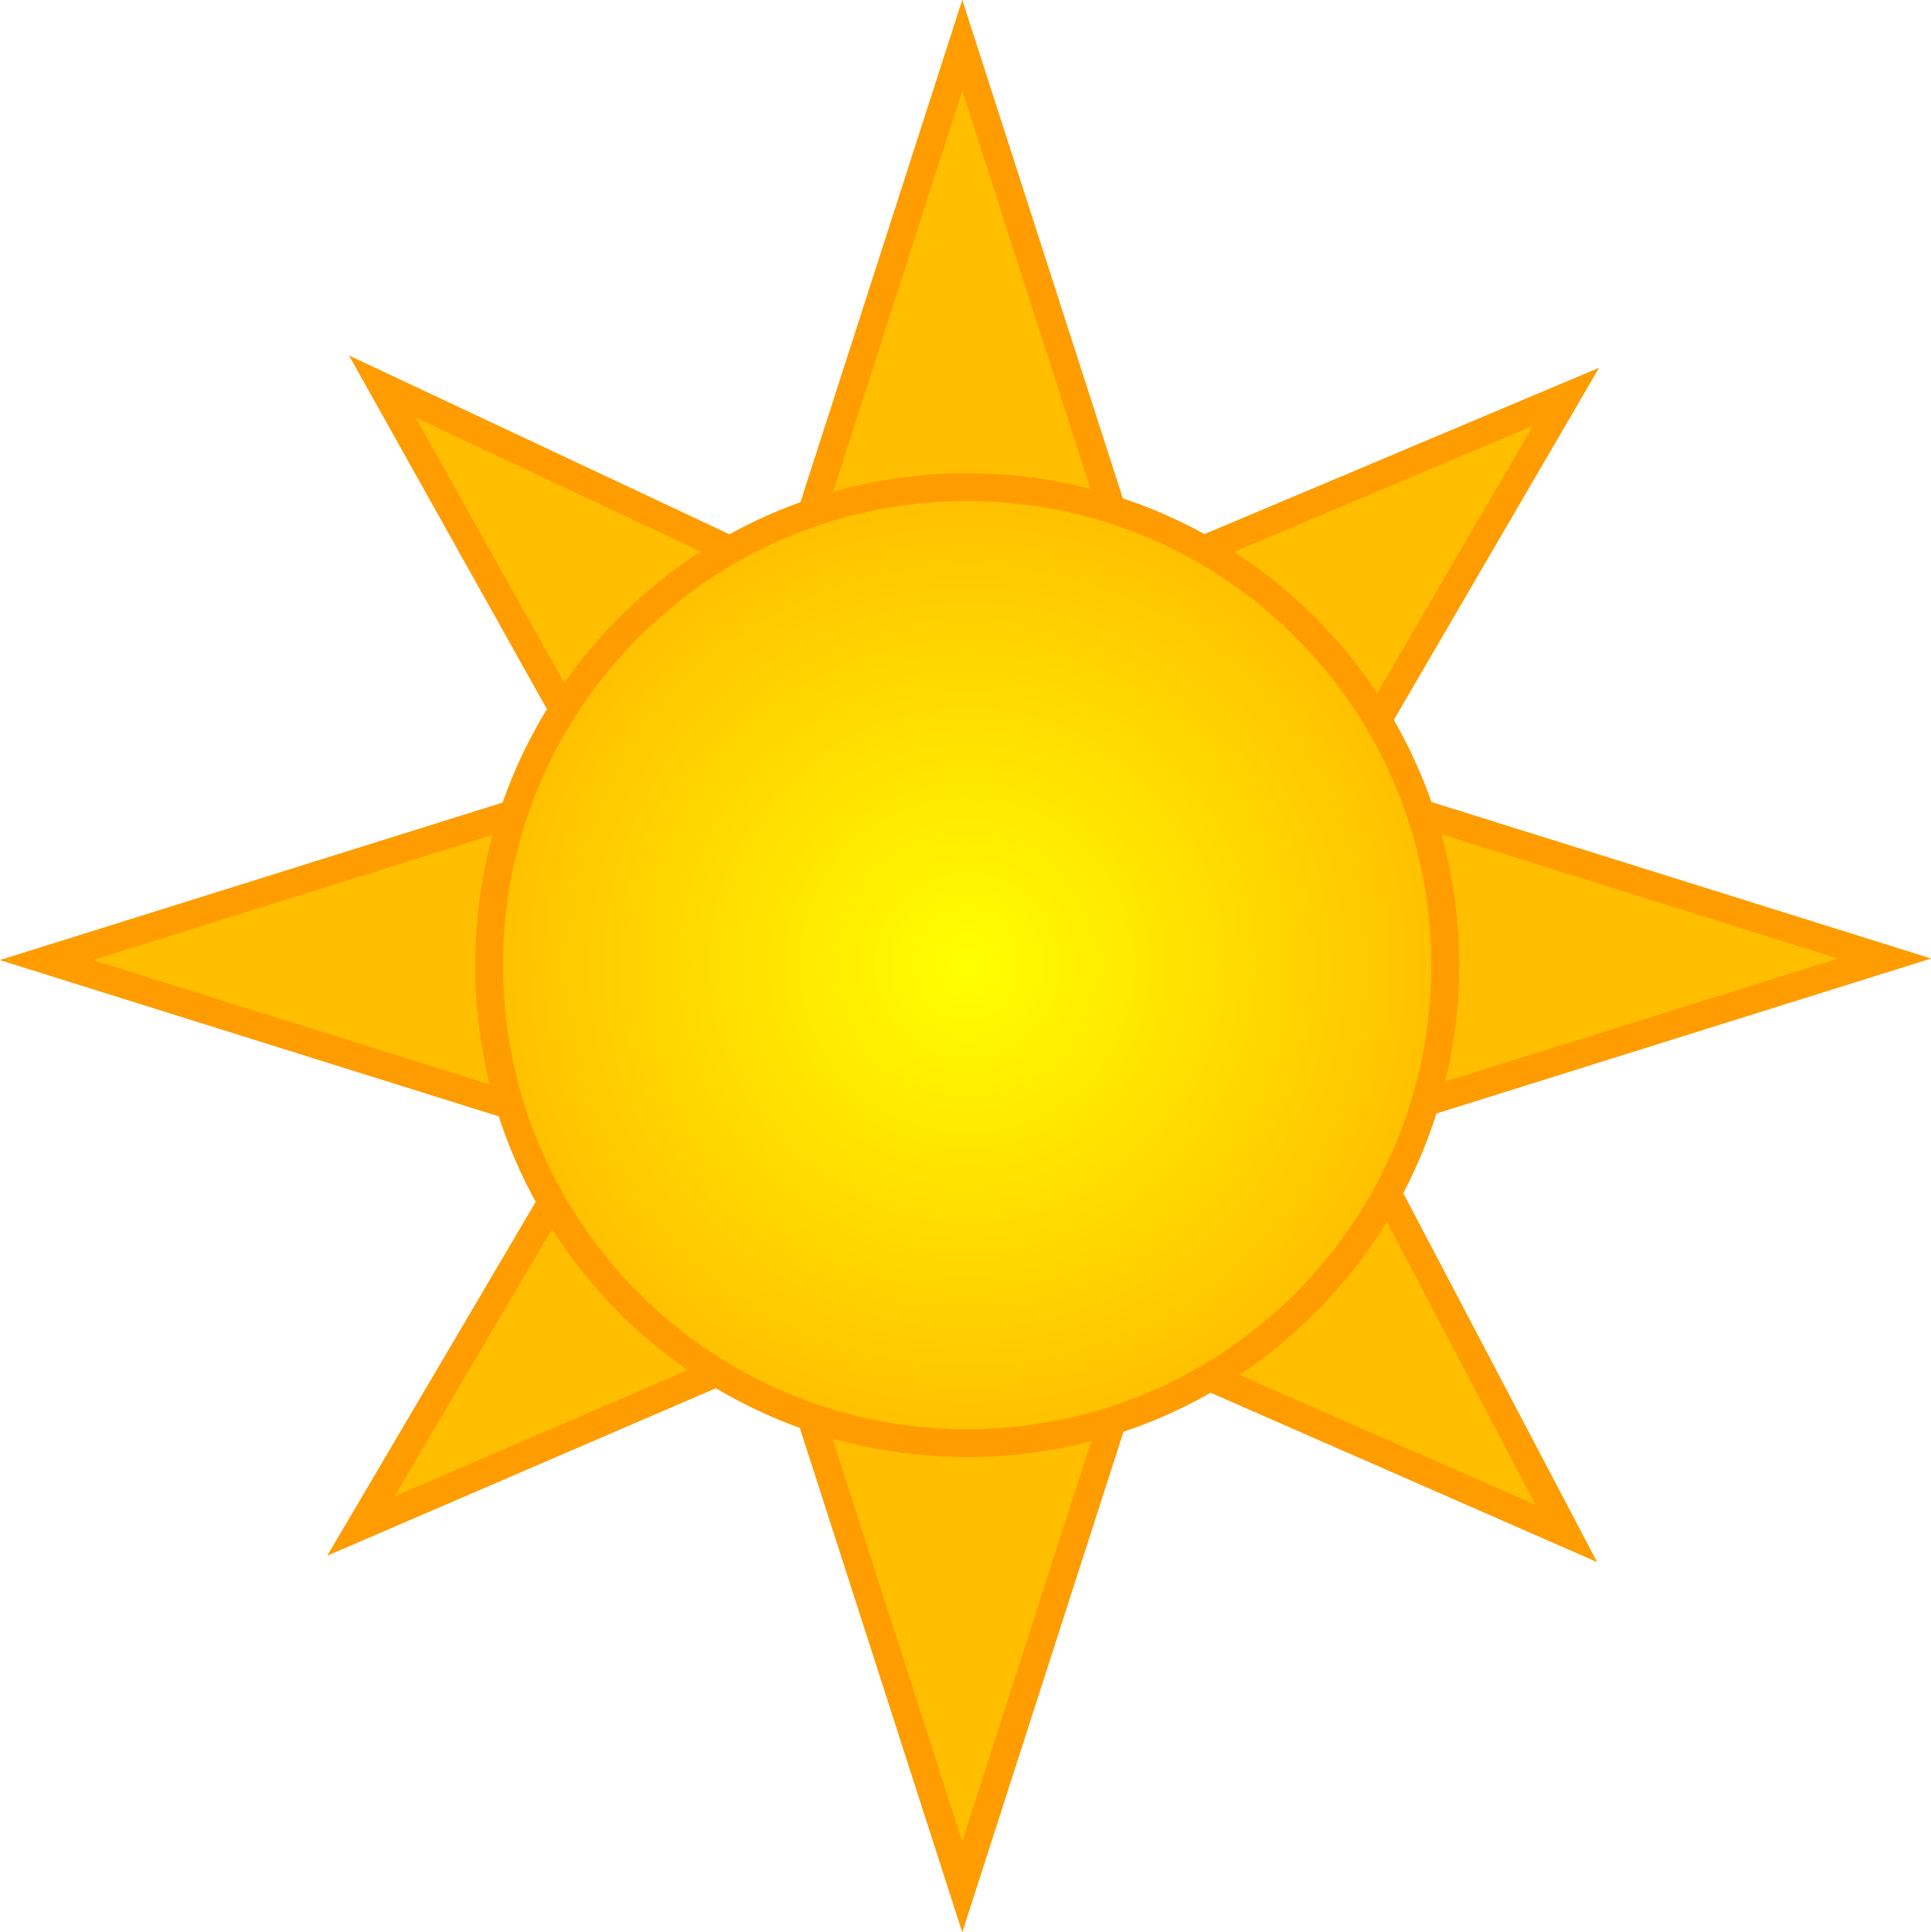 Free images clip art. Clipart sun colored